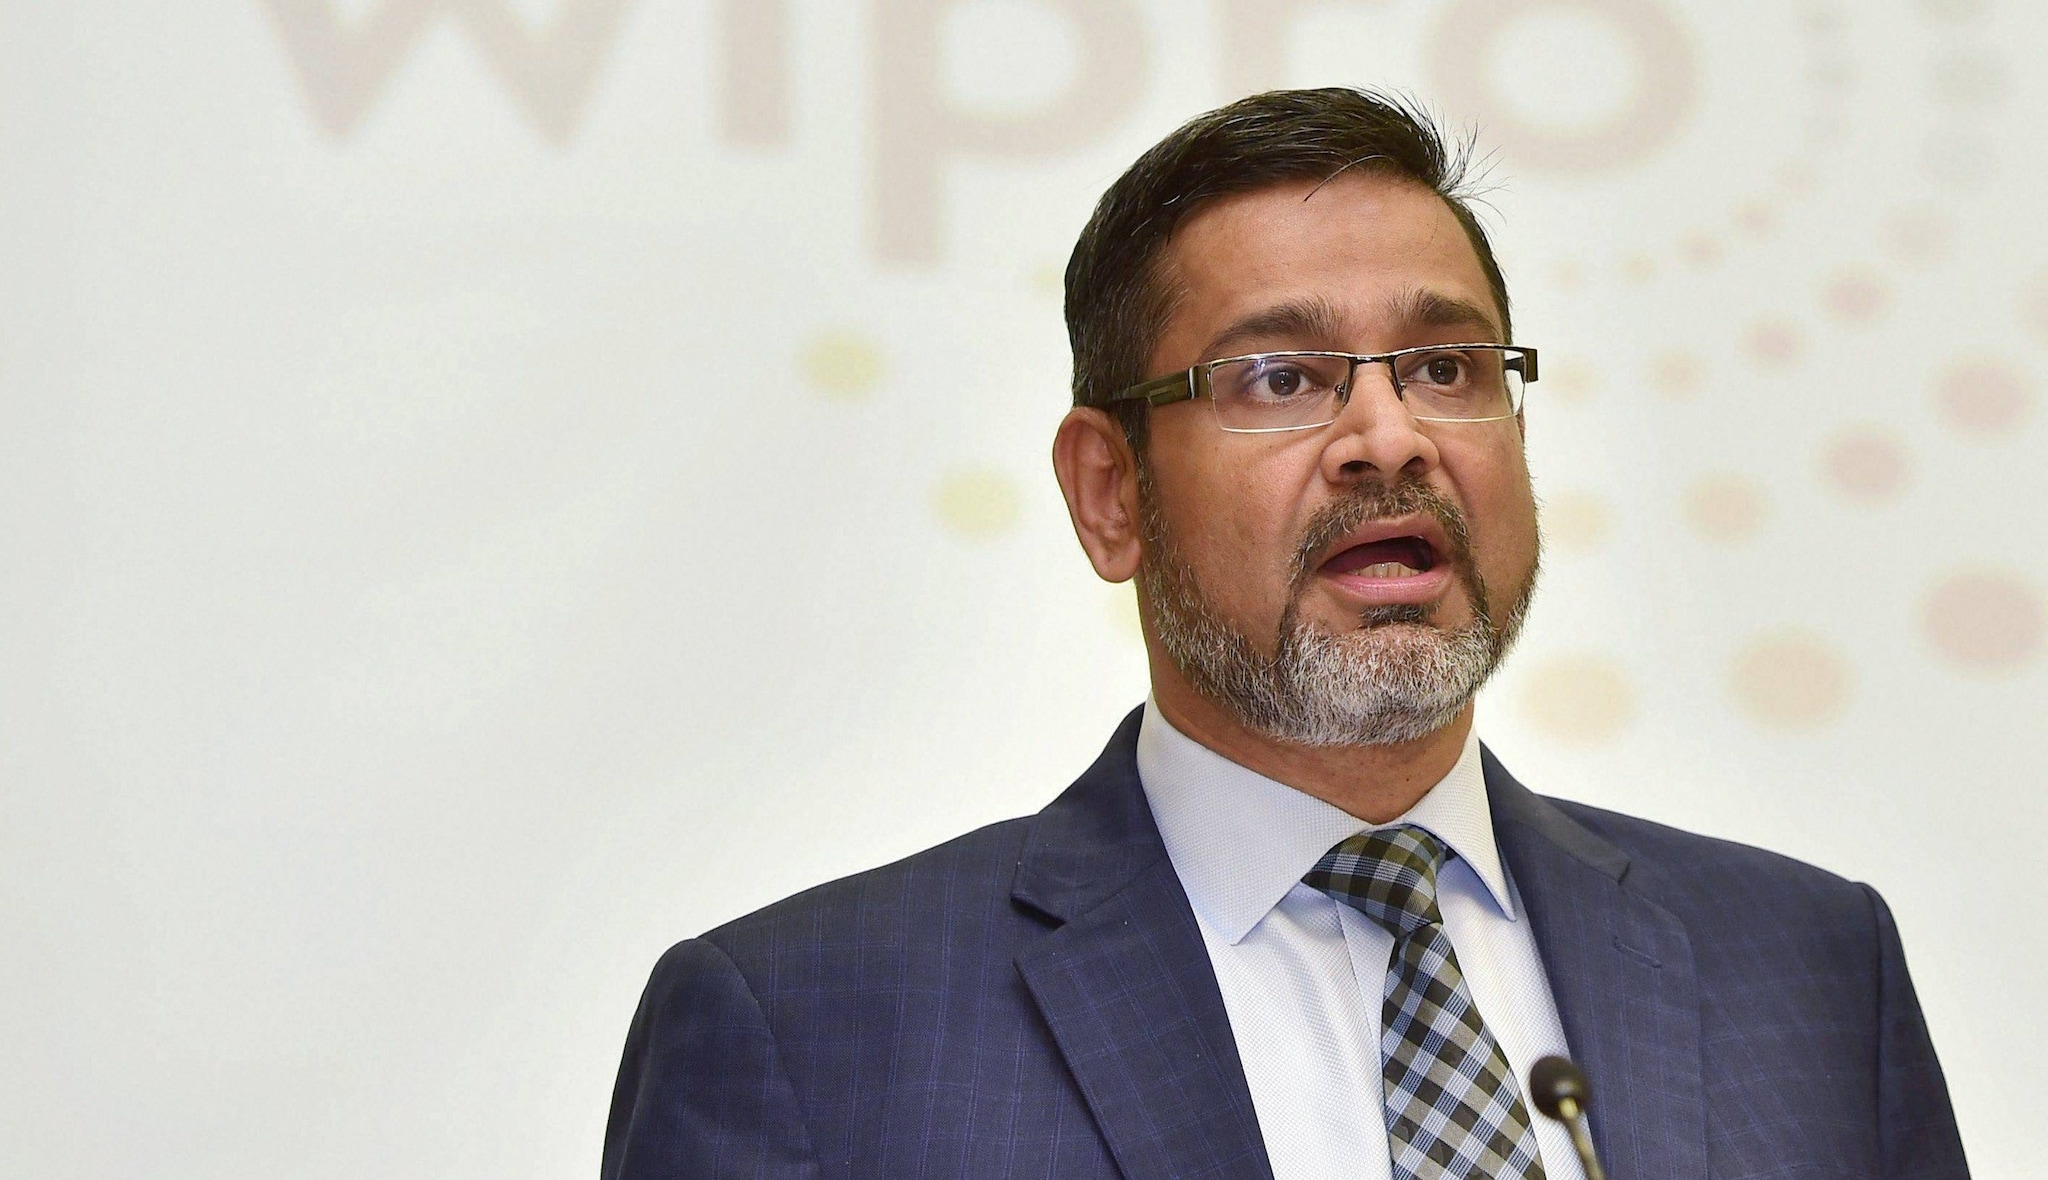 In a regulatory filing, Wipro said Abidali Neemuchwala's salary jumped nearly 41 percent to $3.95 million (approx Rs 27 crore) in FY19, with variable pay forming a large chunk as it is paid to him annually. (Image: PTI)